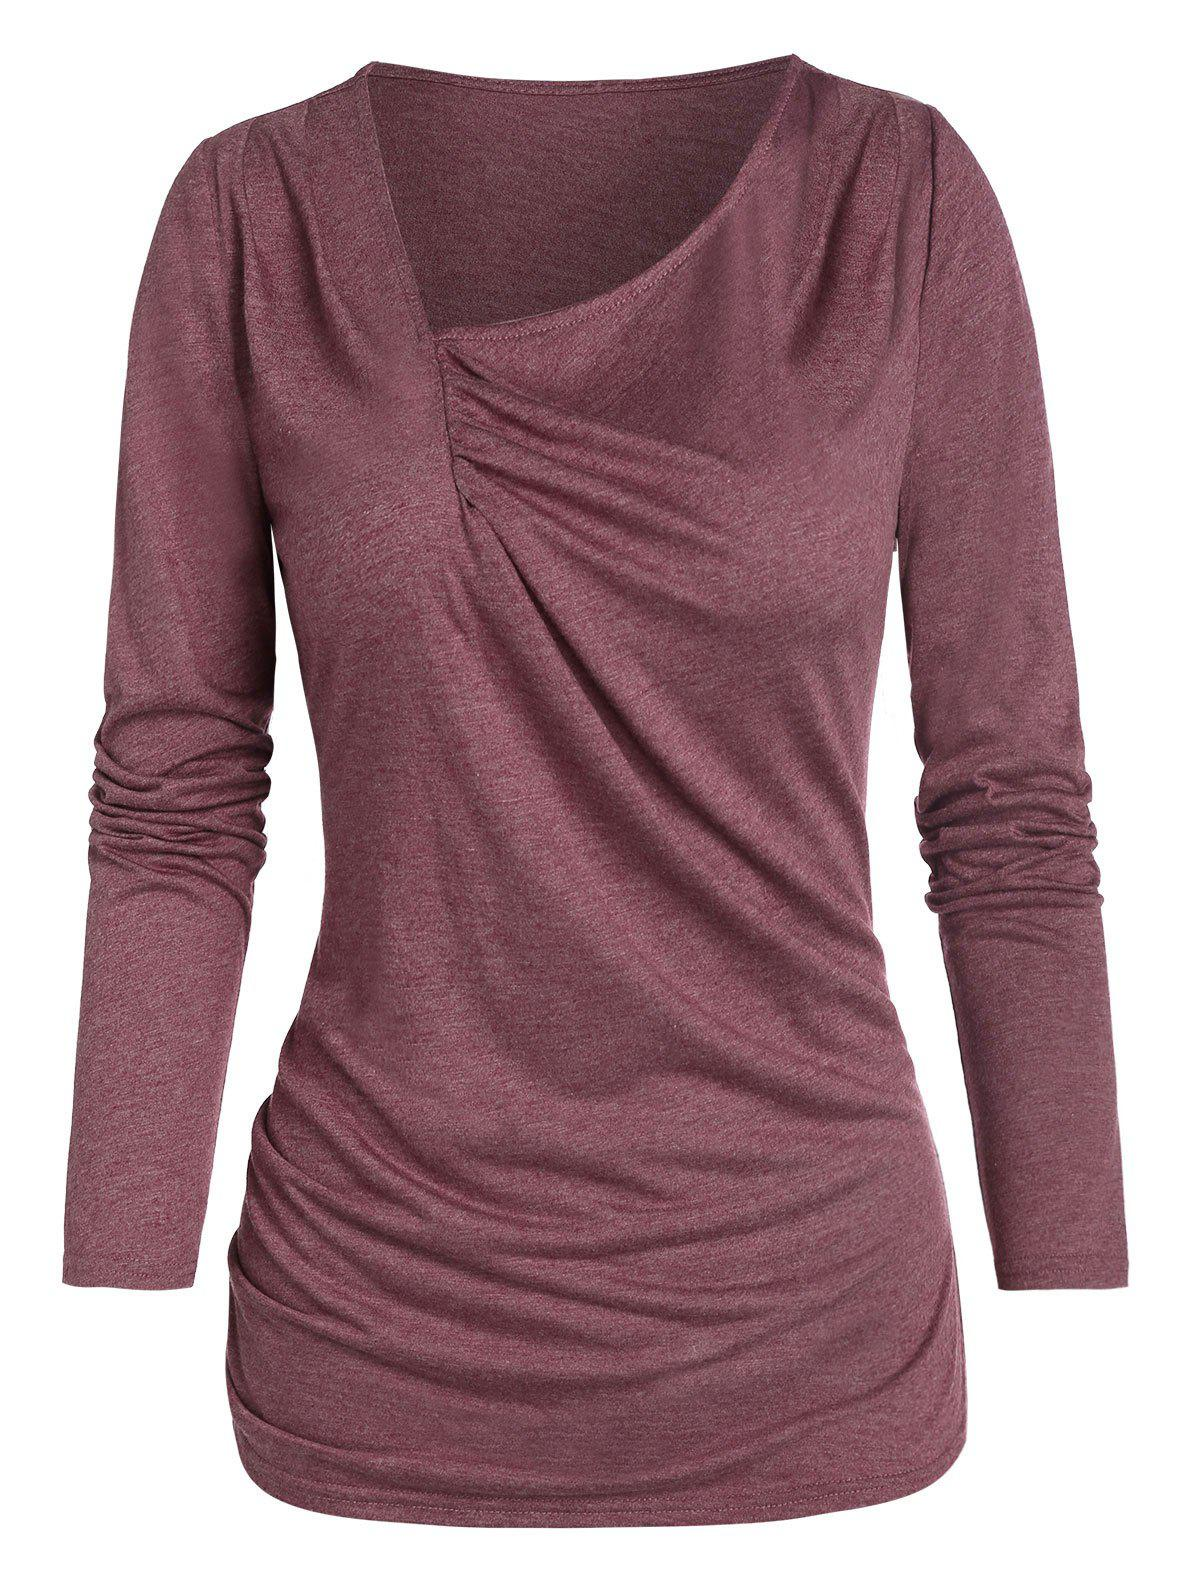 Ruched Front Long Sleeve Marled T-shirt - FIREBRICK L